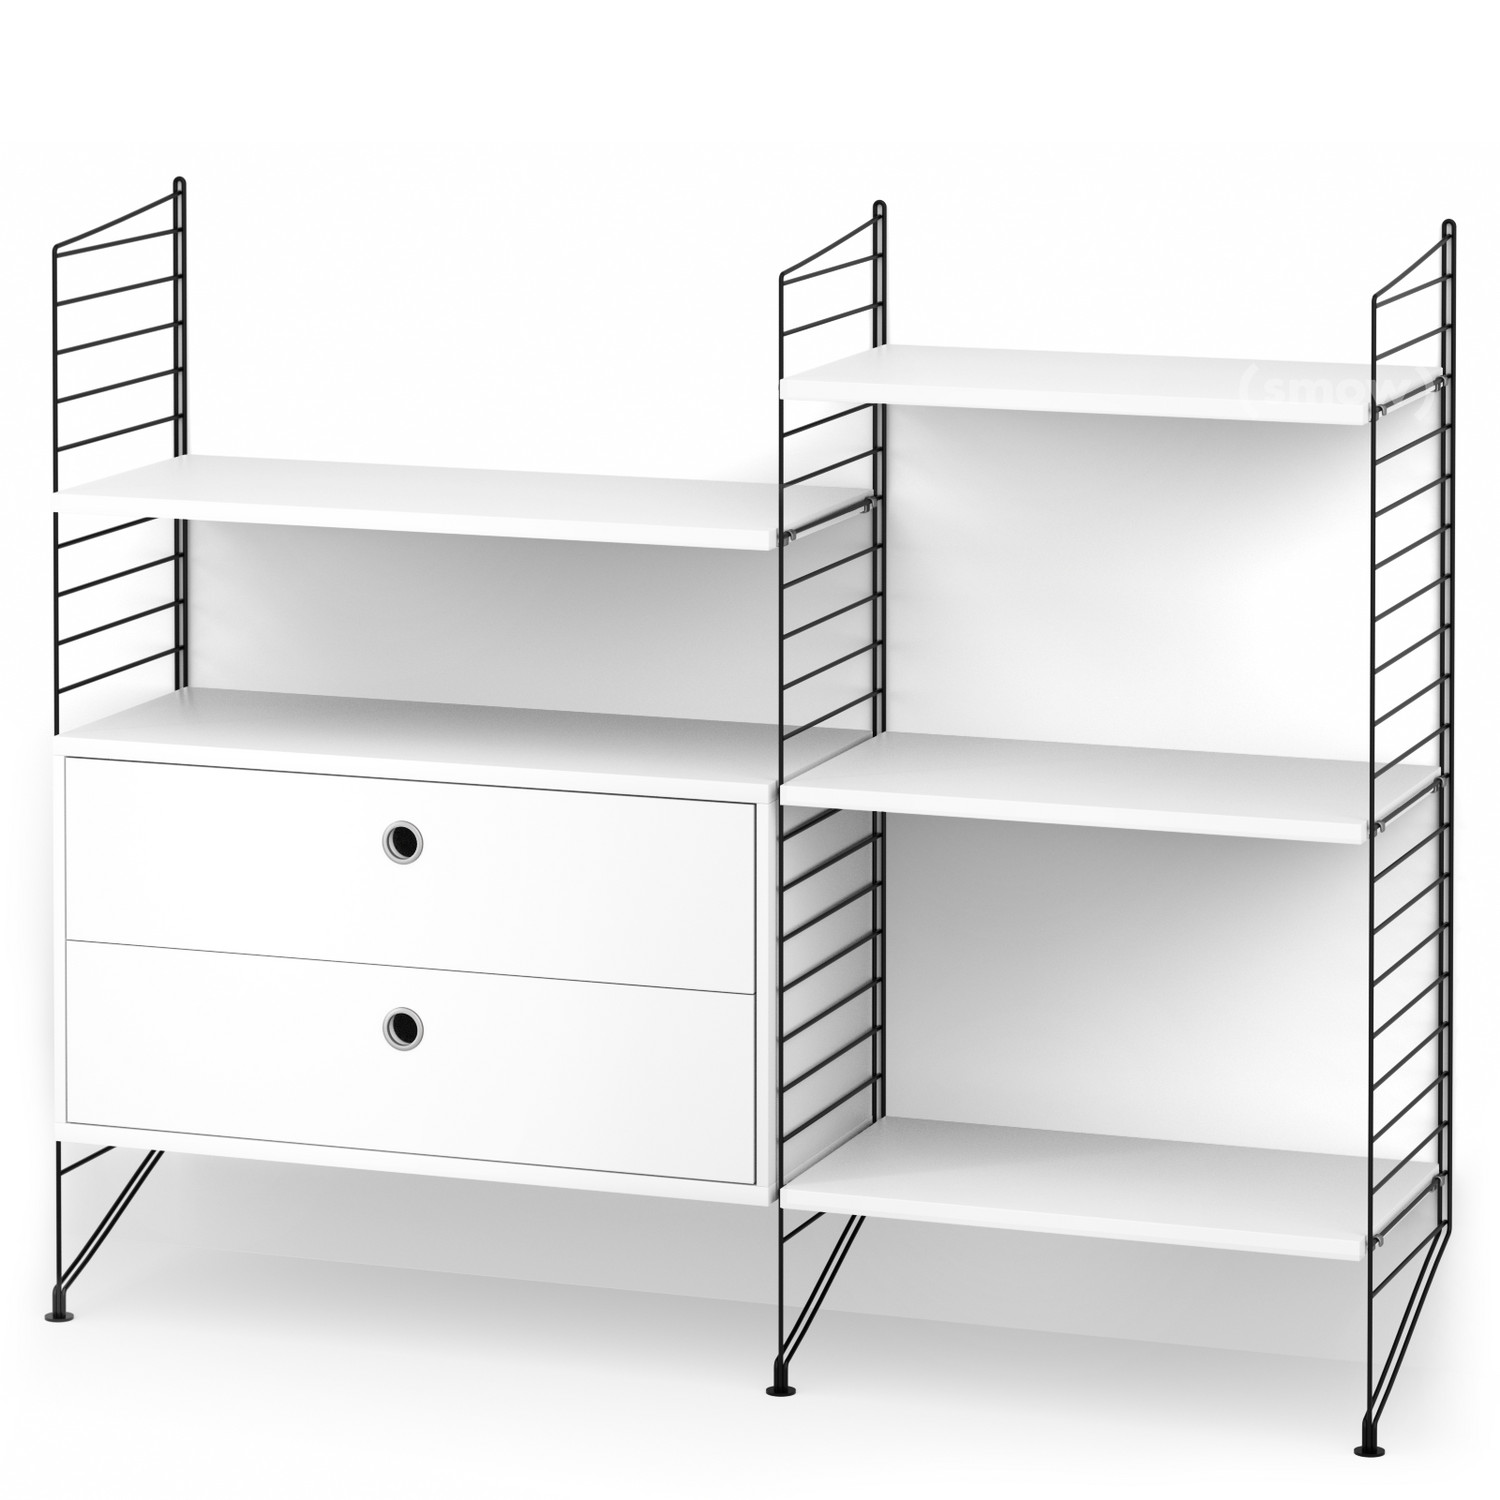 AuBergewohnlich String System Floor Shelf With Drawers Black|White Lacquered